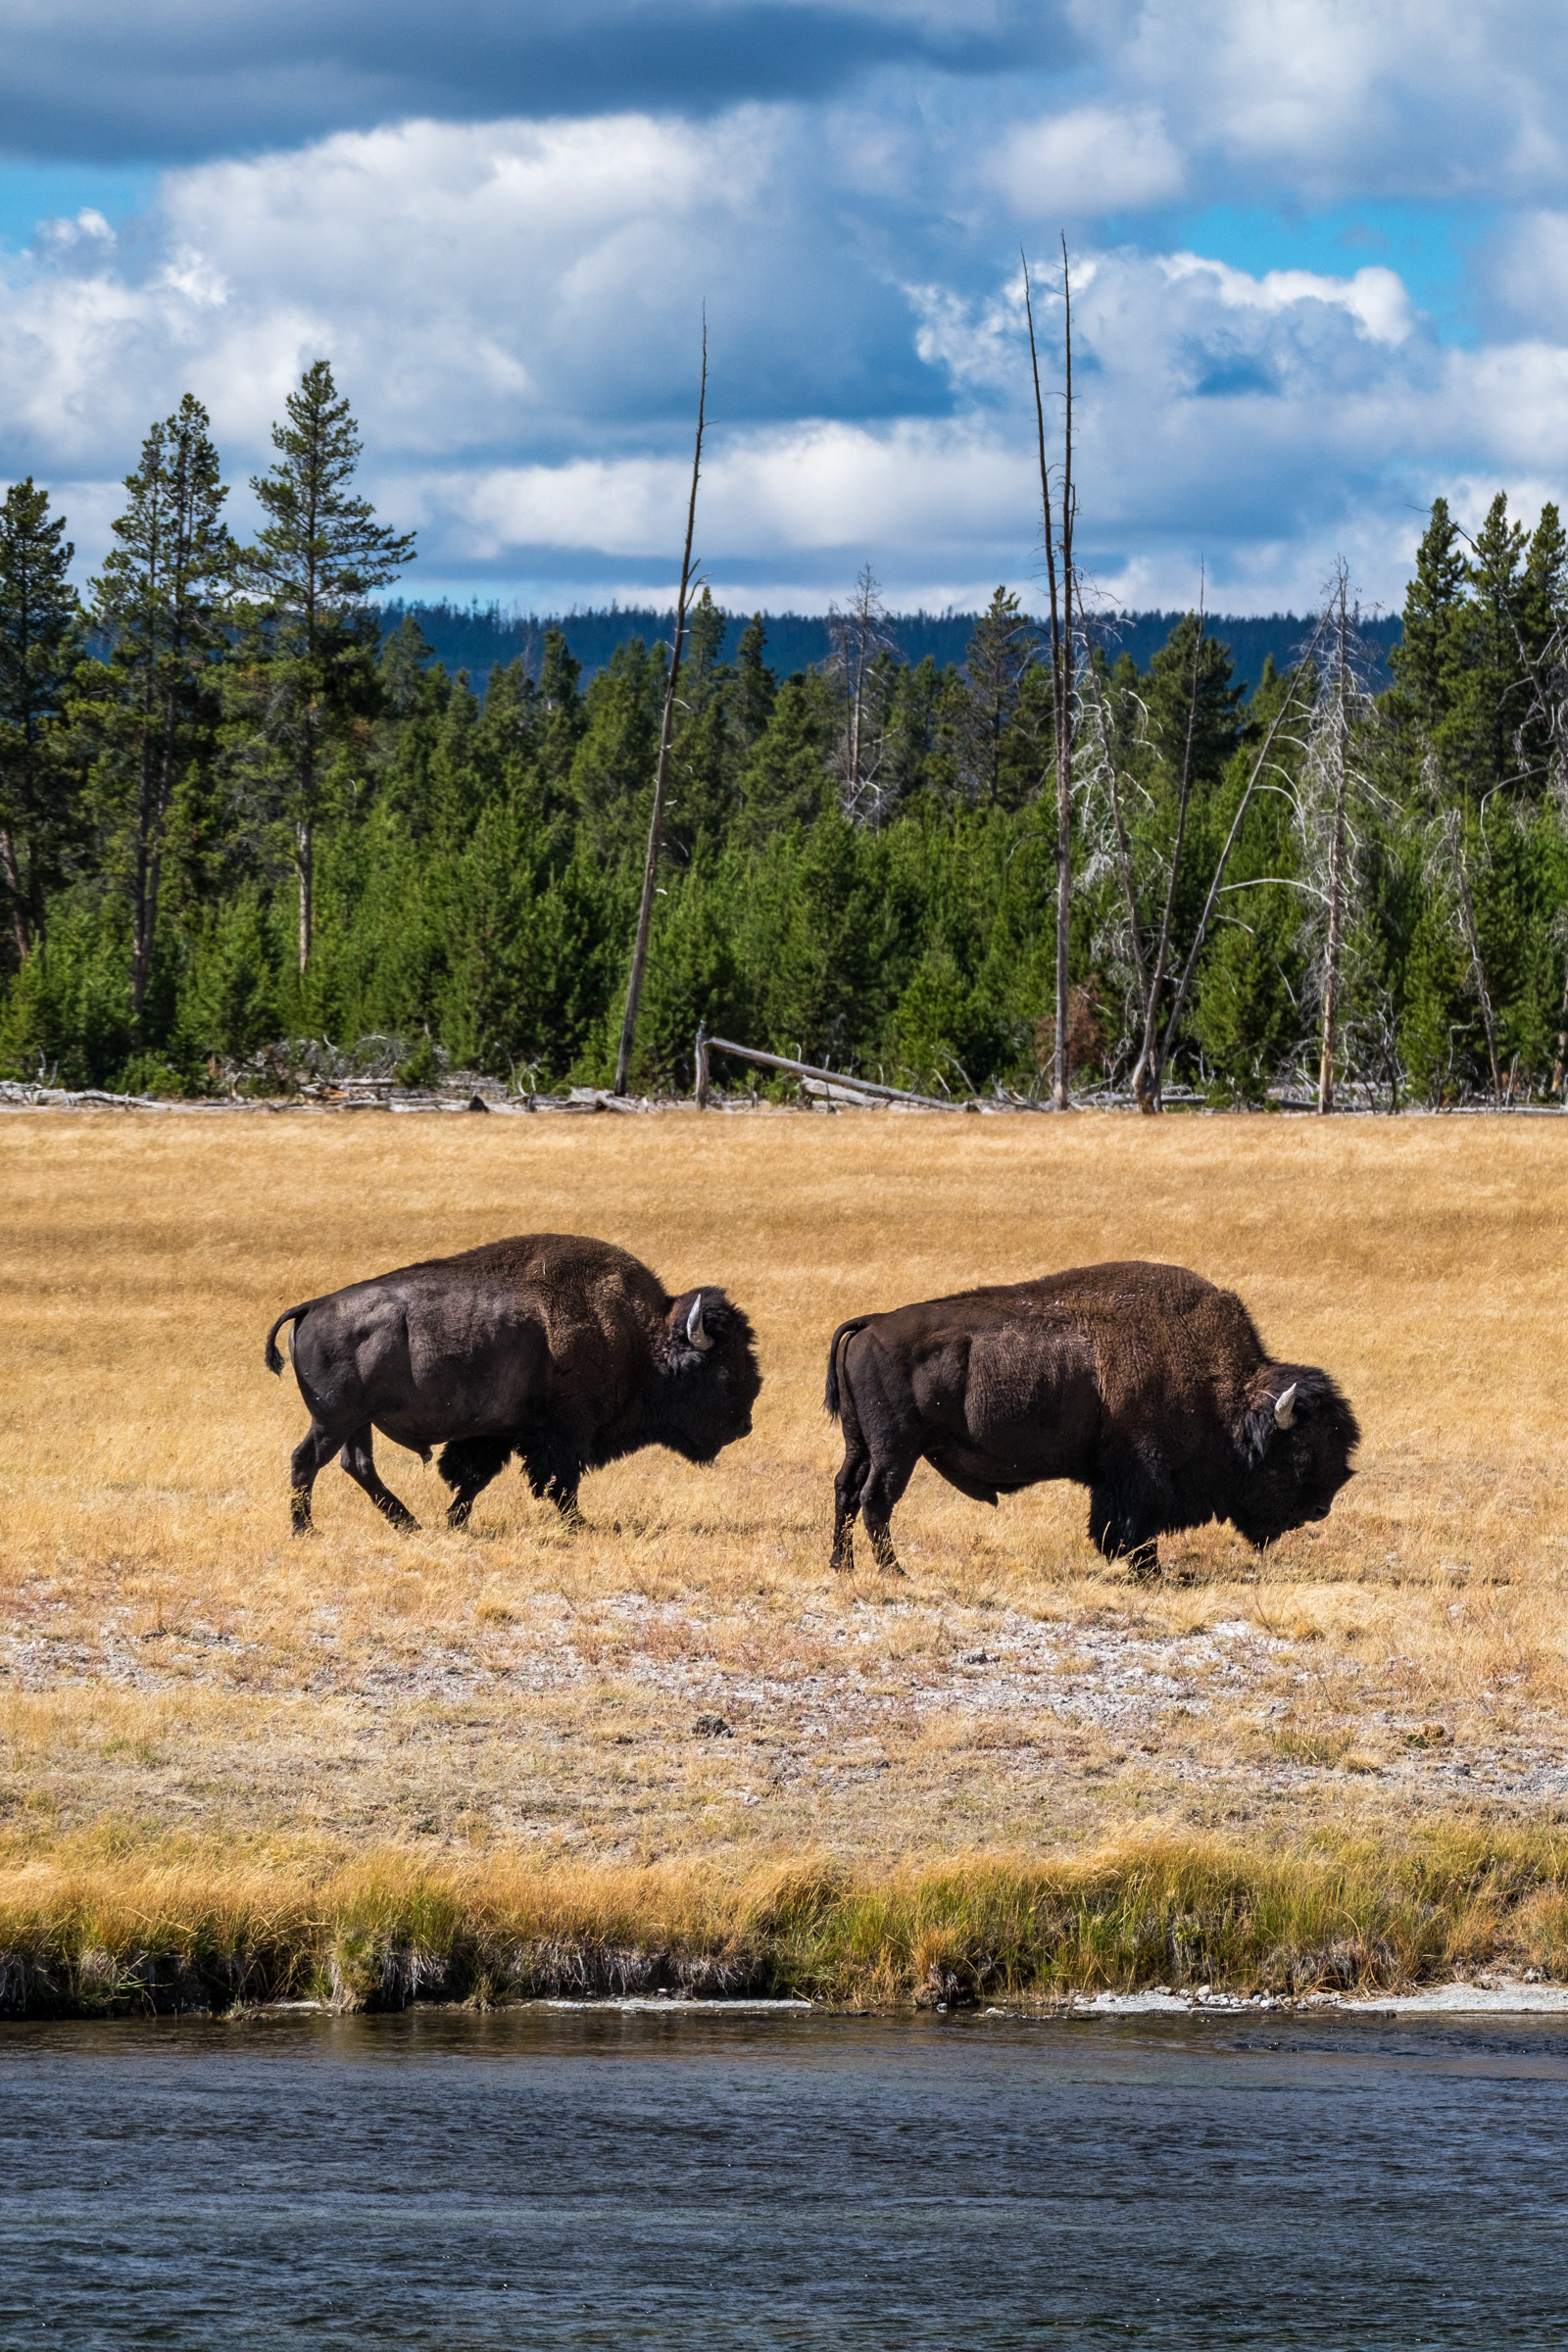 20160919-JI-Yellowstone National Park-_DSF6890-2.jpg